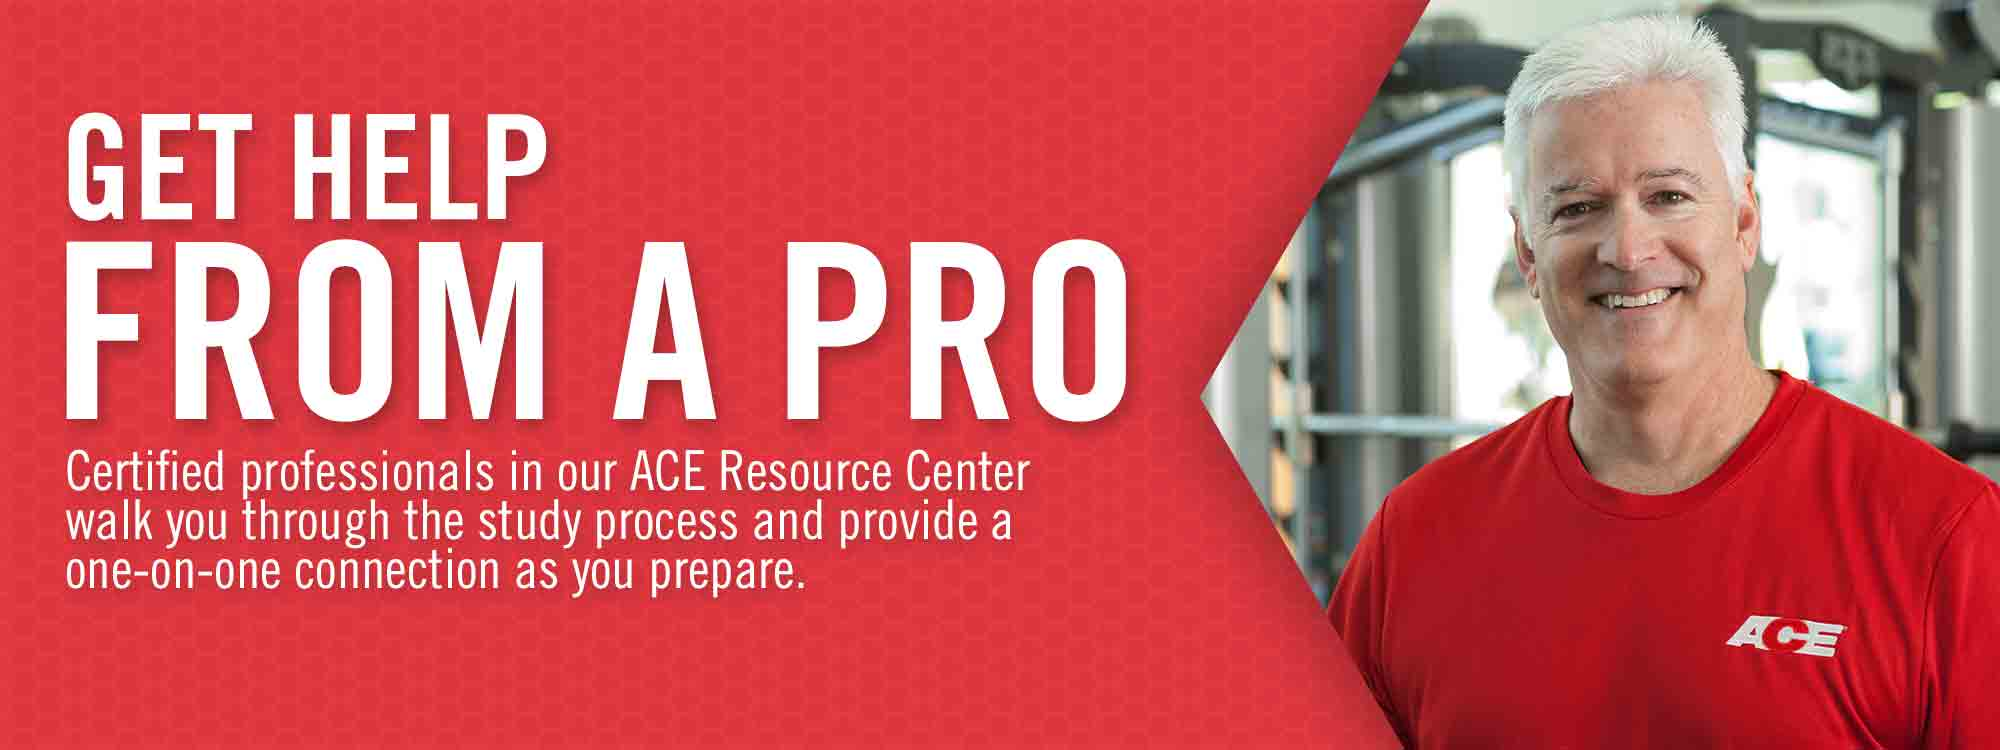 Get Help From a Pro. Certified professional in our ACE Resource Center walk you through the study process and provide a one-on-one connection as you prepare.